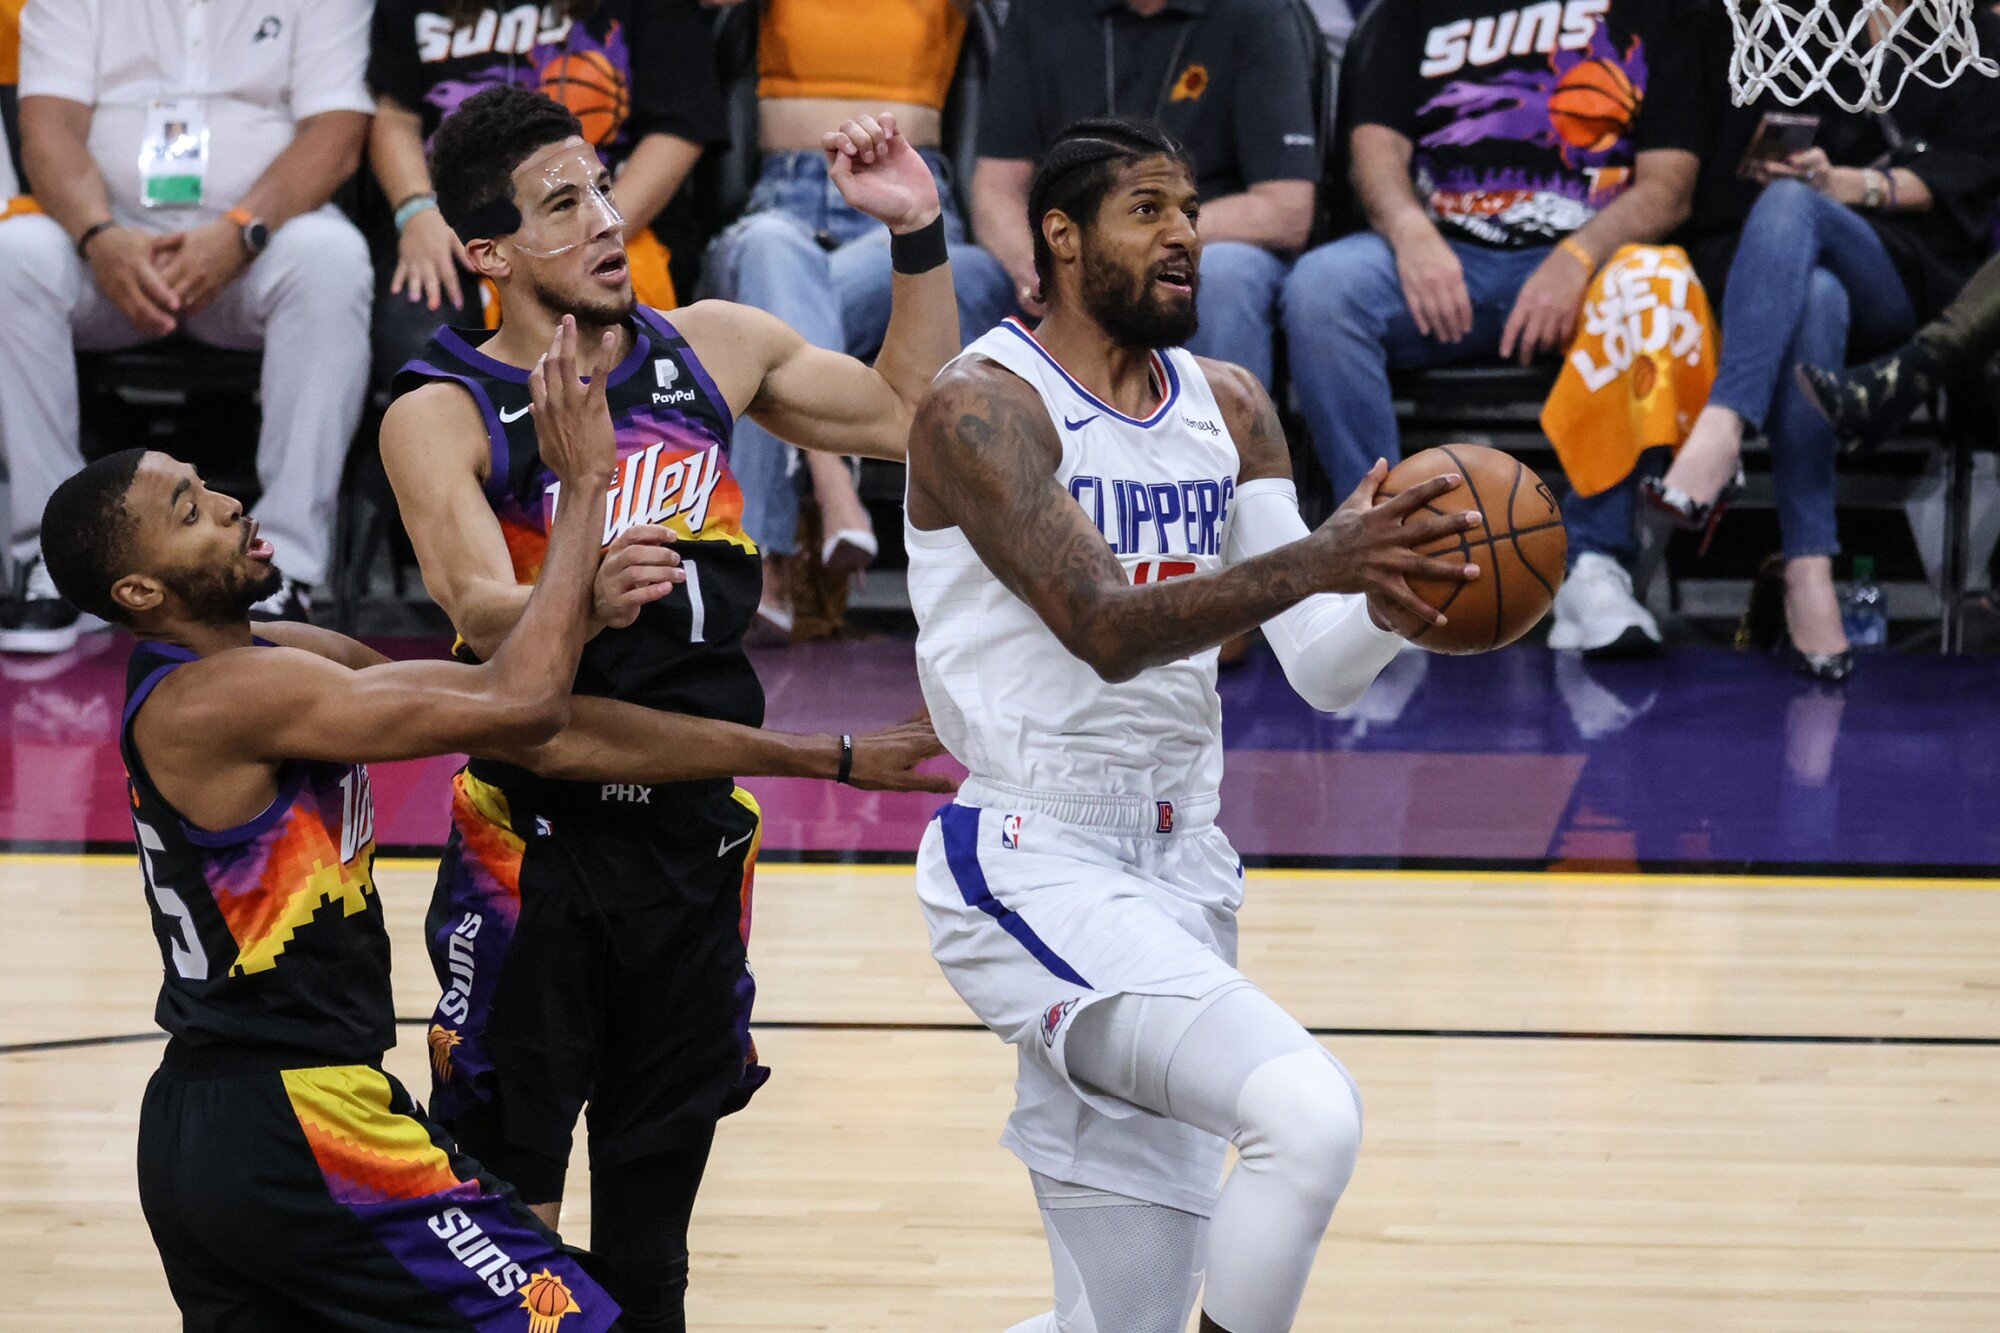 Clippers forward Paul George elevates past Suns guard Devin Booker and forward Mikal Bridges (25) for a layup during Game 5.